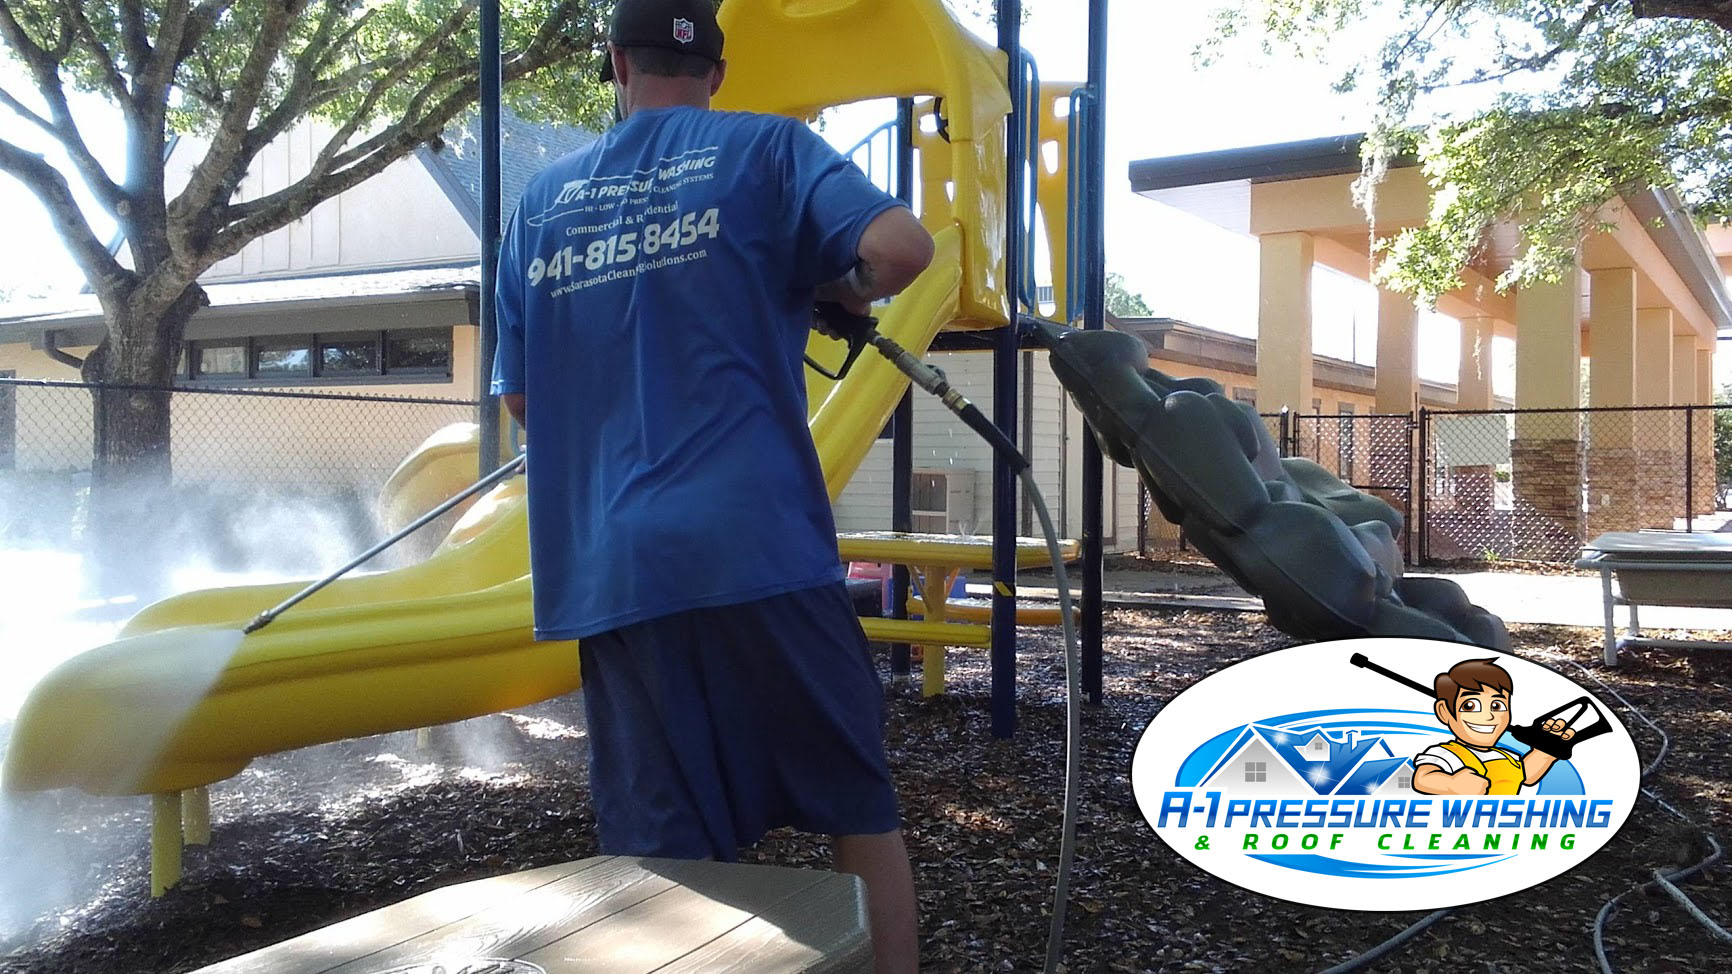 A-1 Pressure Washing & Roof Cleaning | Cleaning Playground Equipment